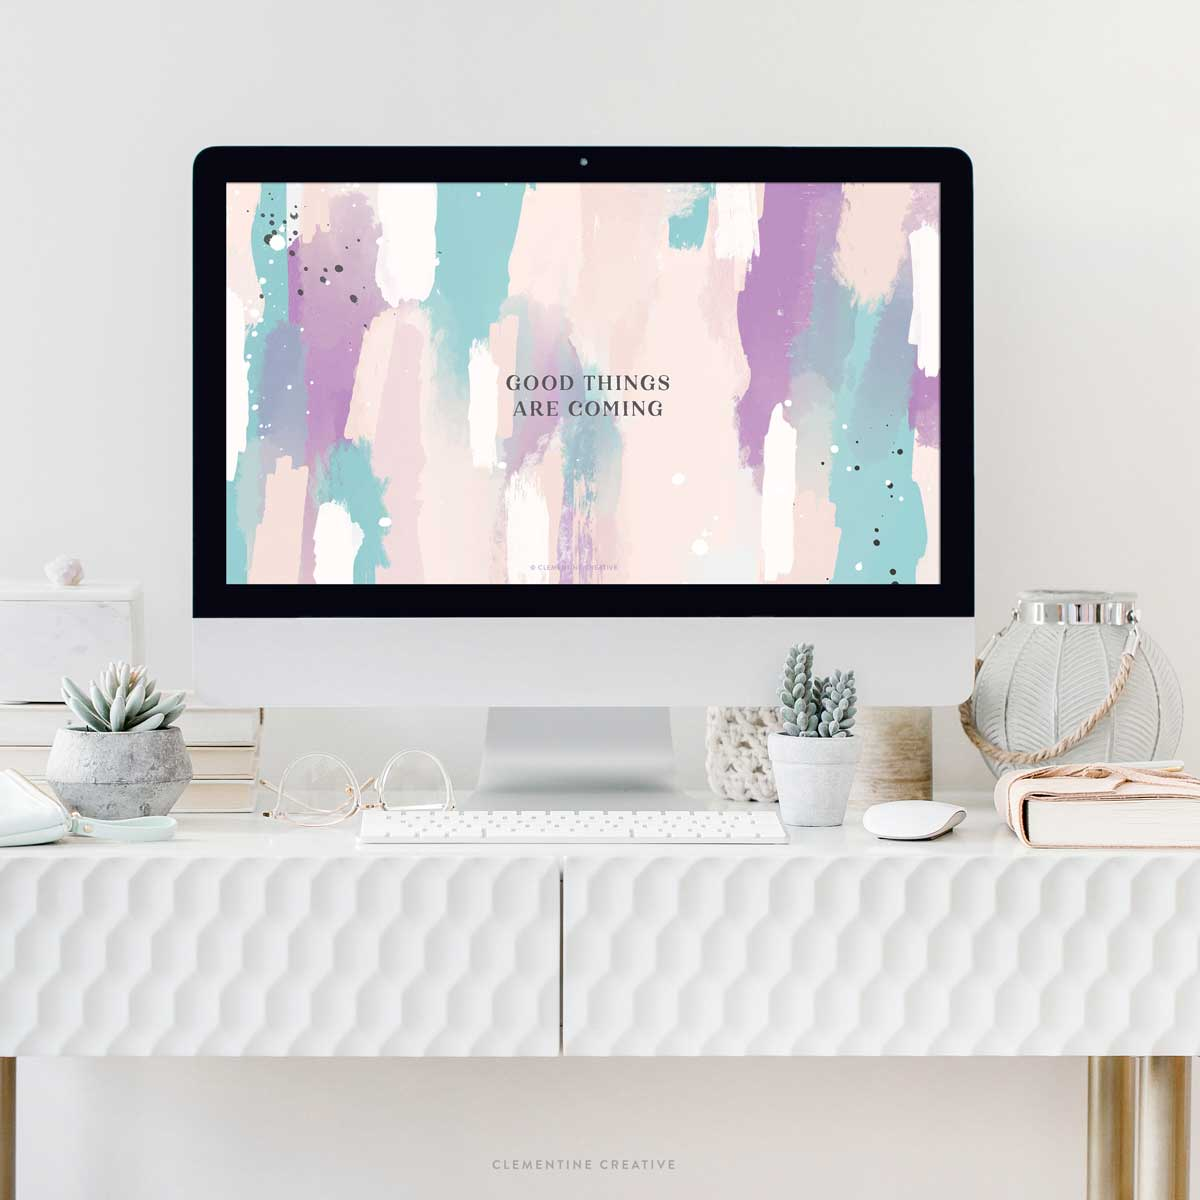 motivational wallpaper with abstract design